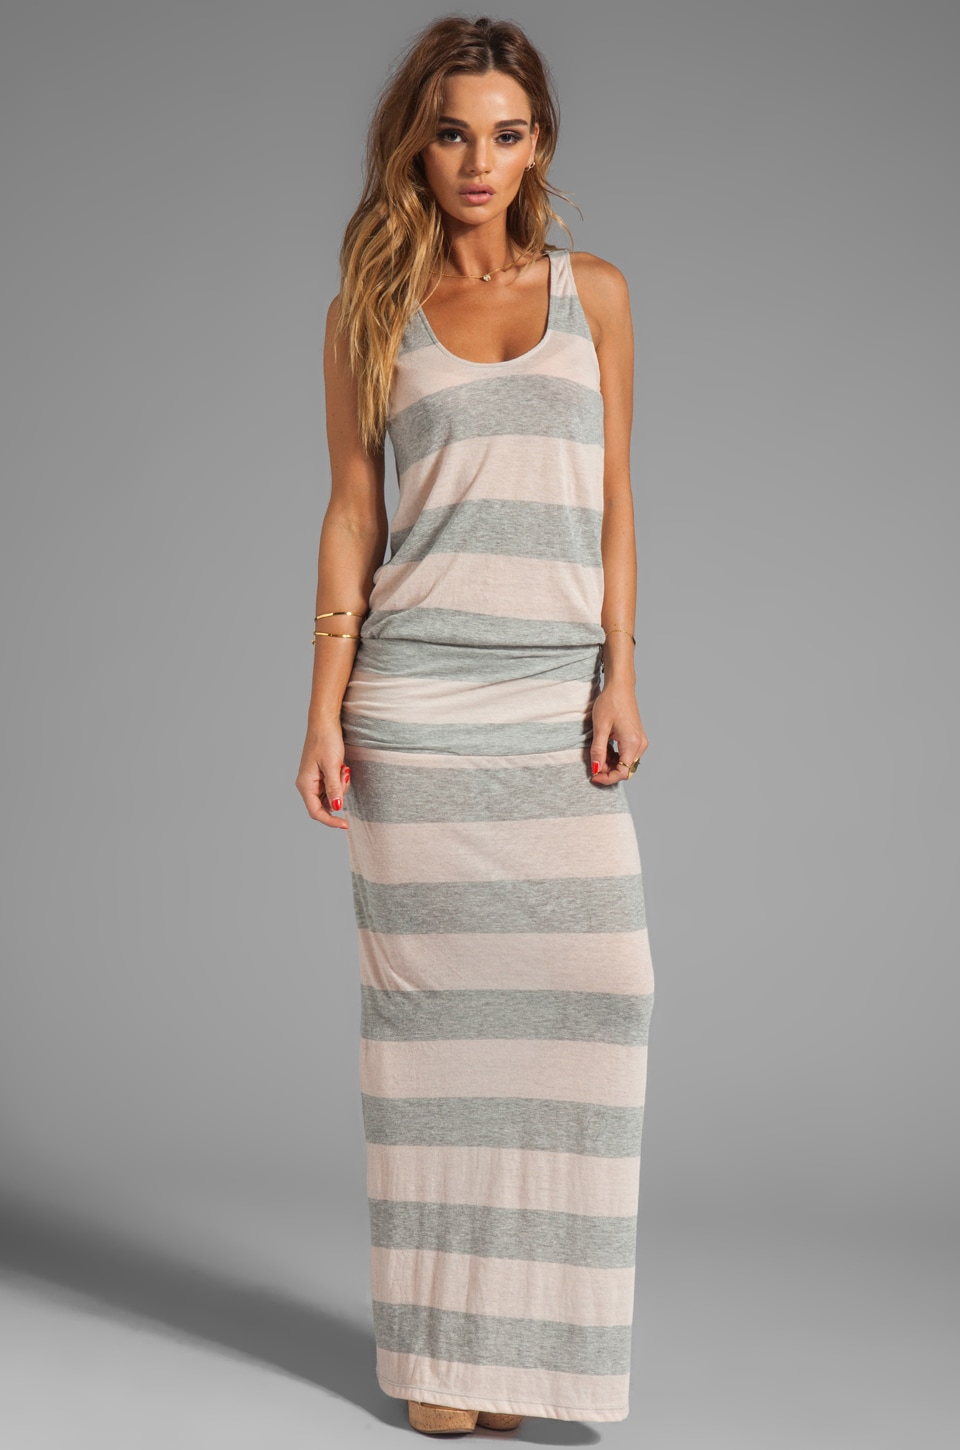 Soft Joie Wilcox Stripe Dress in Heather Grey/Nude